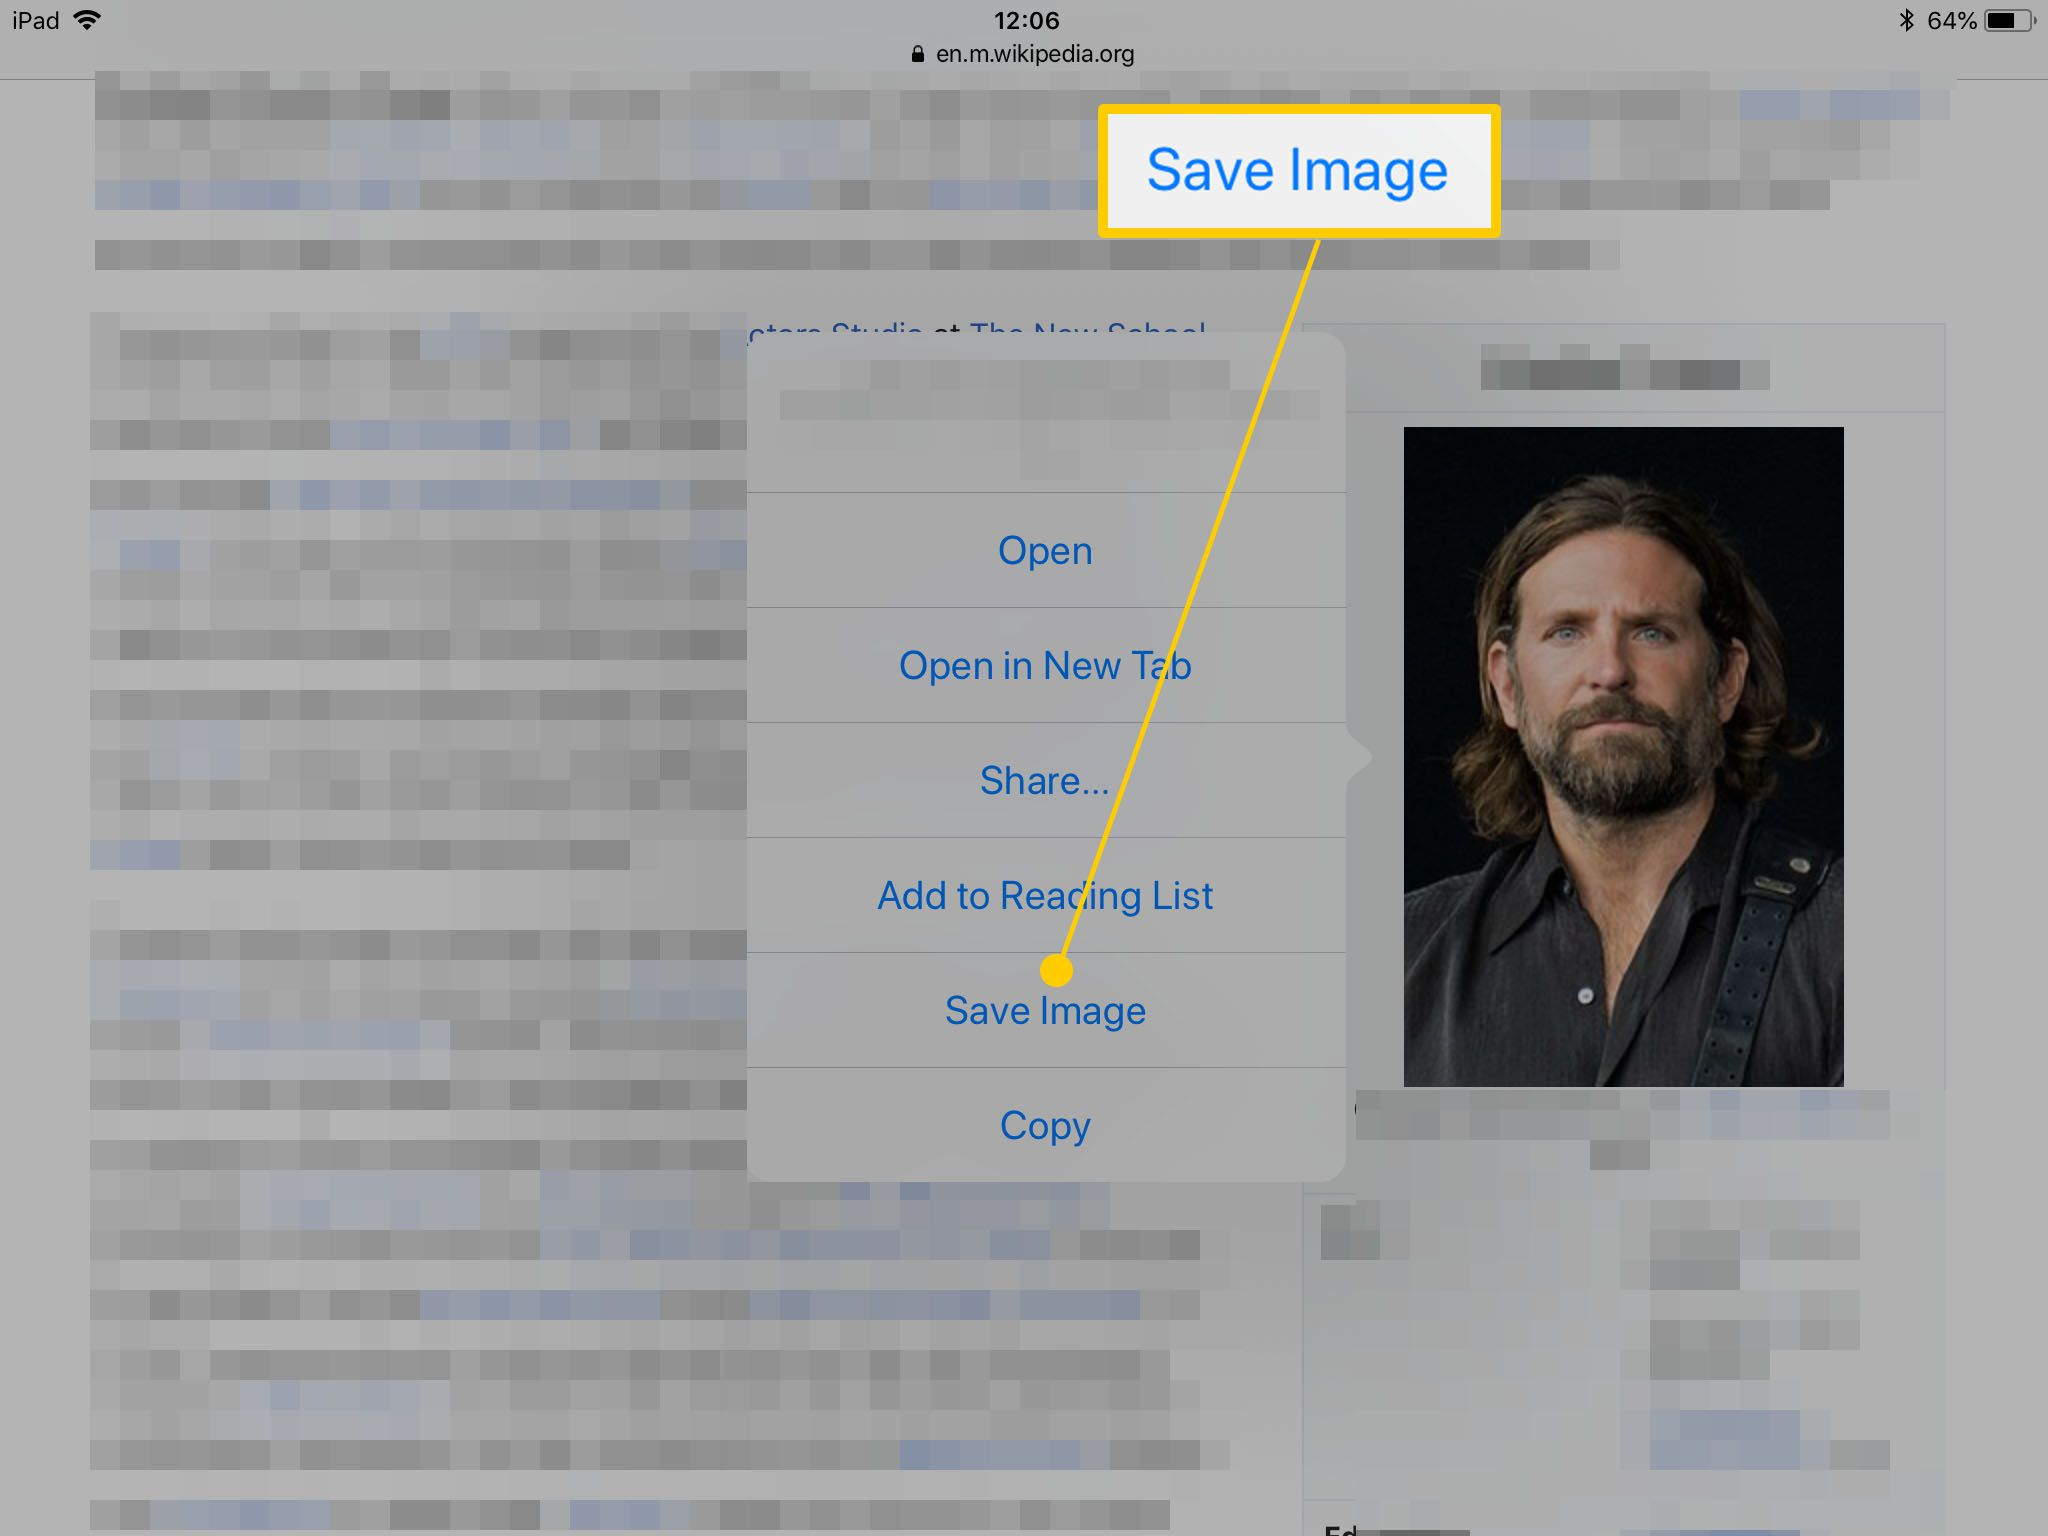 An image within Safari on the iPad, with Save Image highlighted.